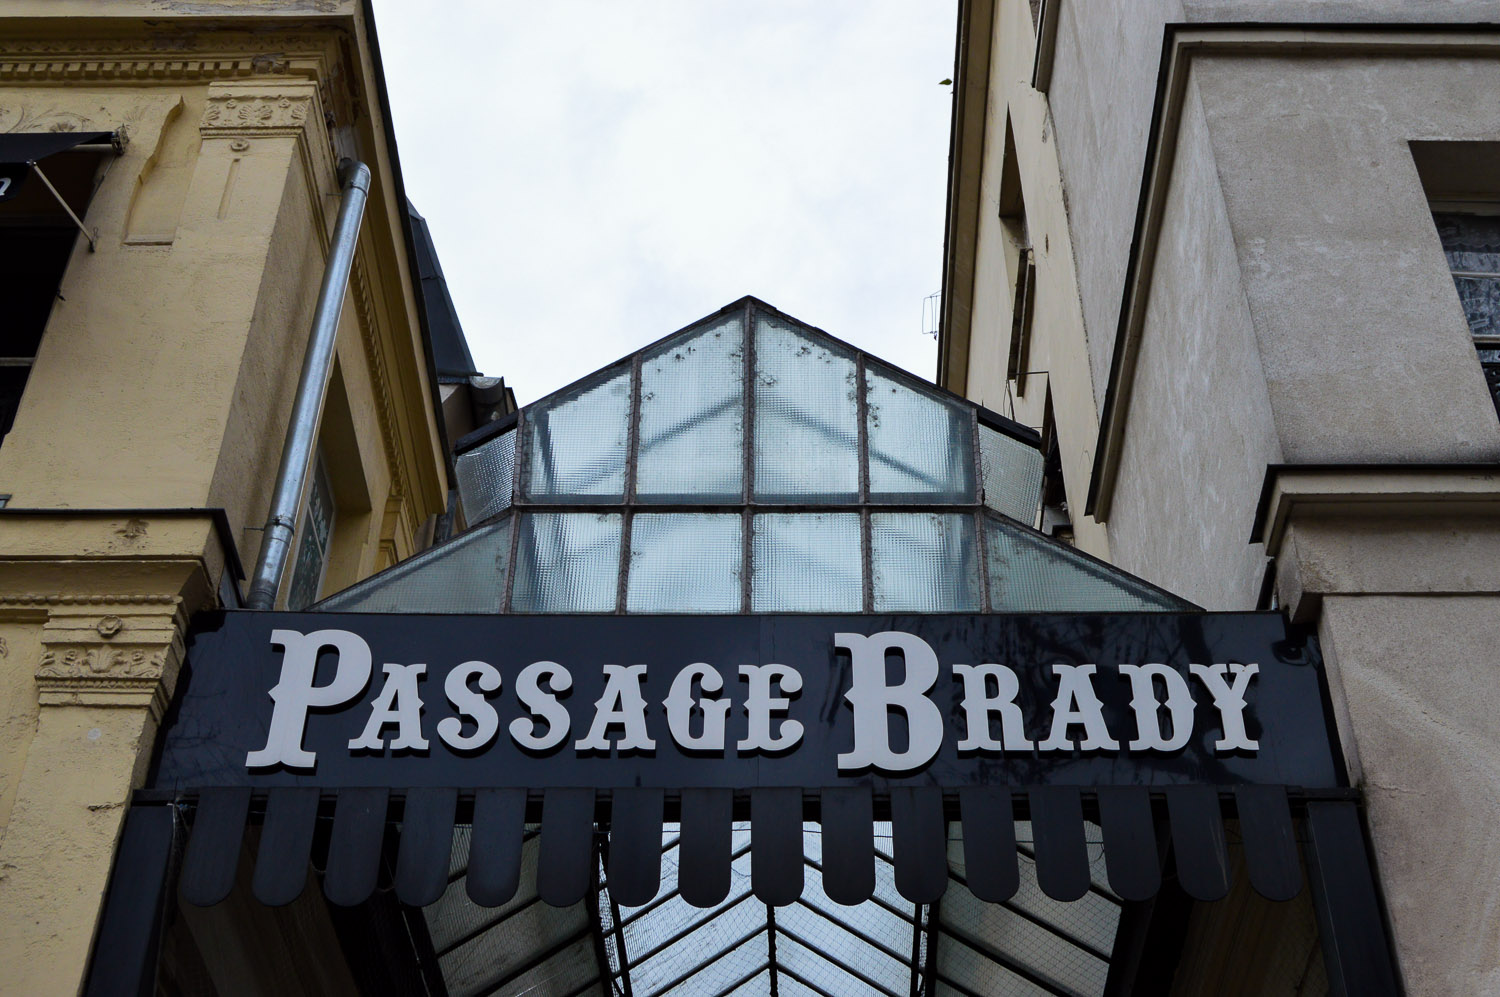 pooja_paris_passage_brady_exterior_sign